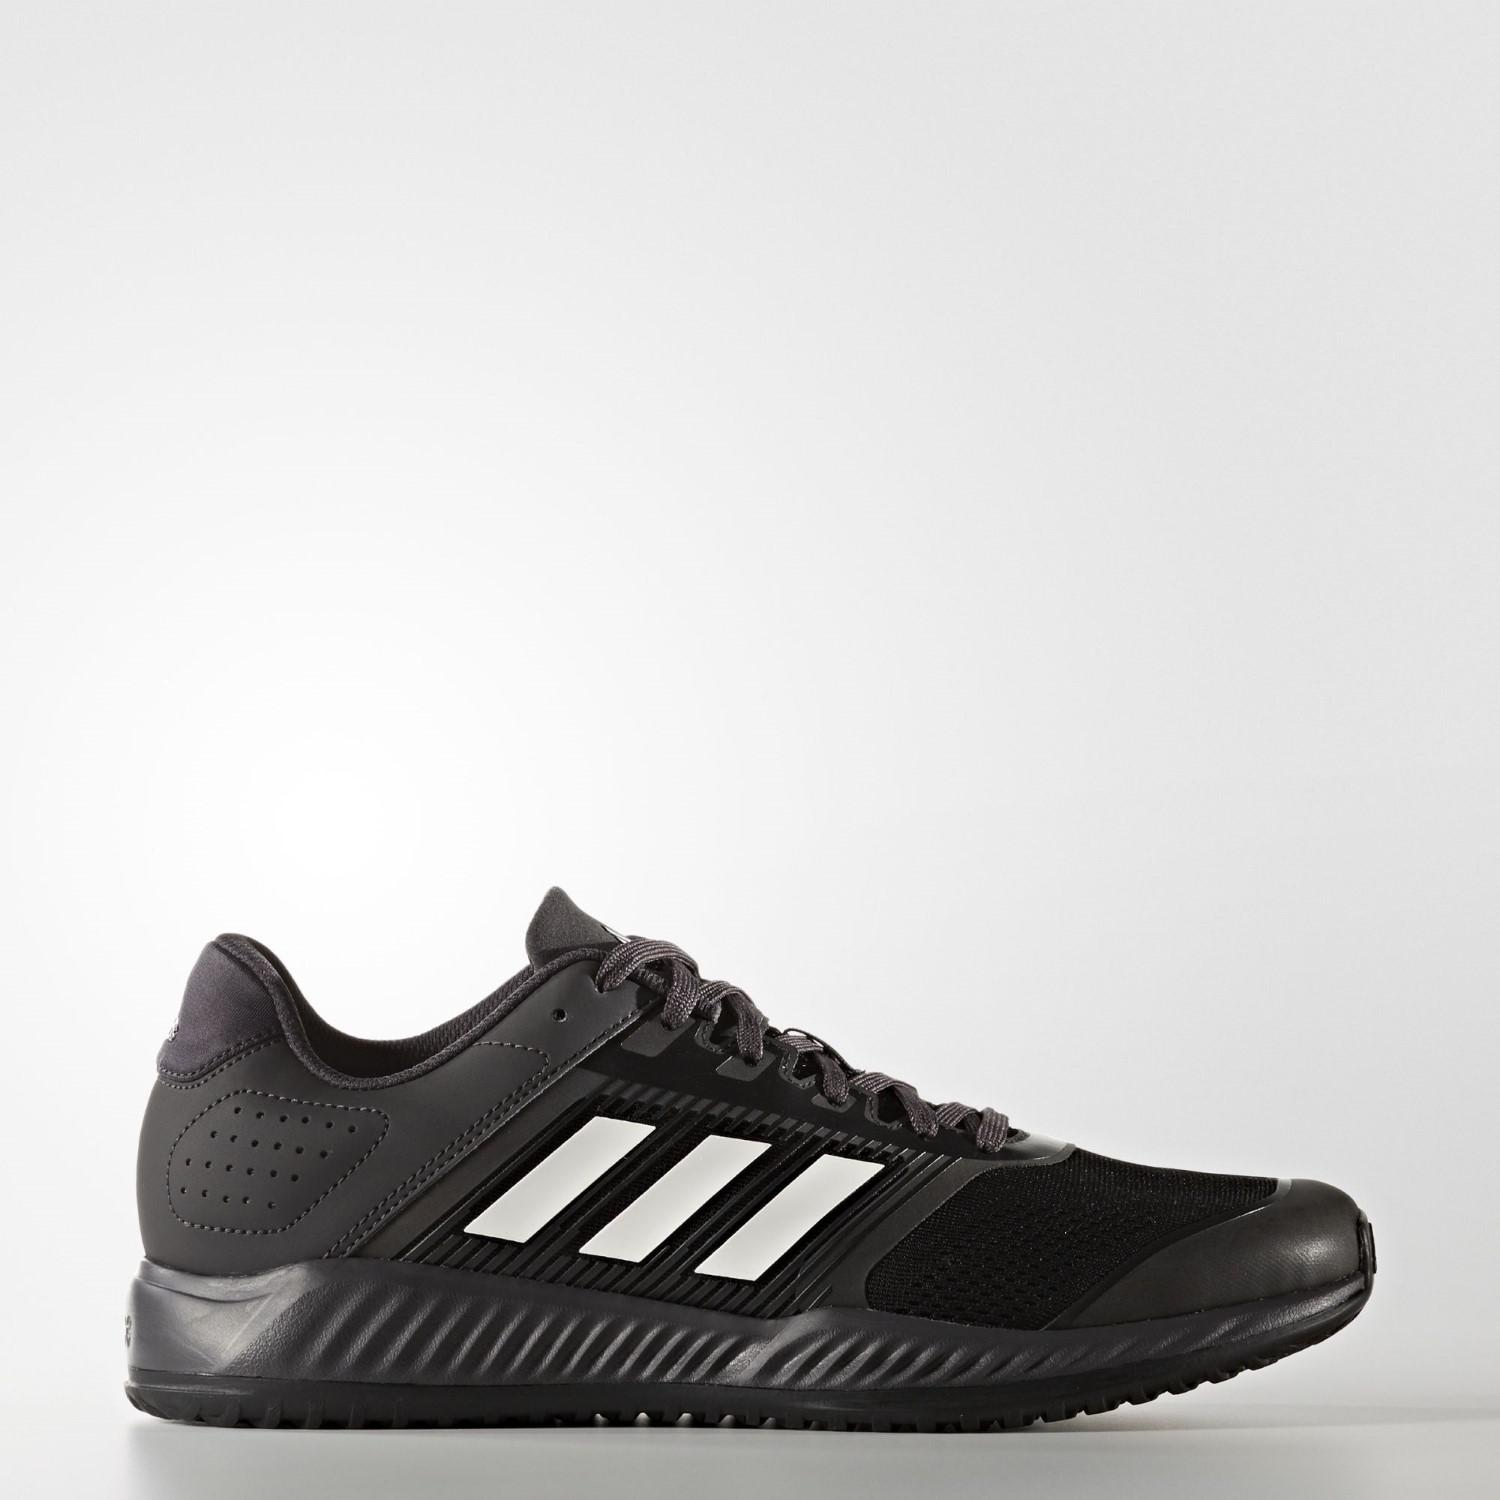 dc9c8f410 Lyst - Adidas Performance Zg M Cross-trainer Shoe in Black for Men